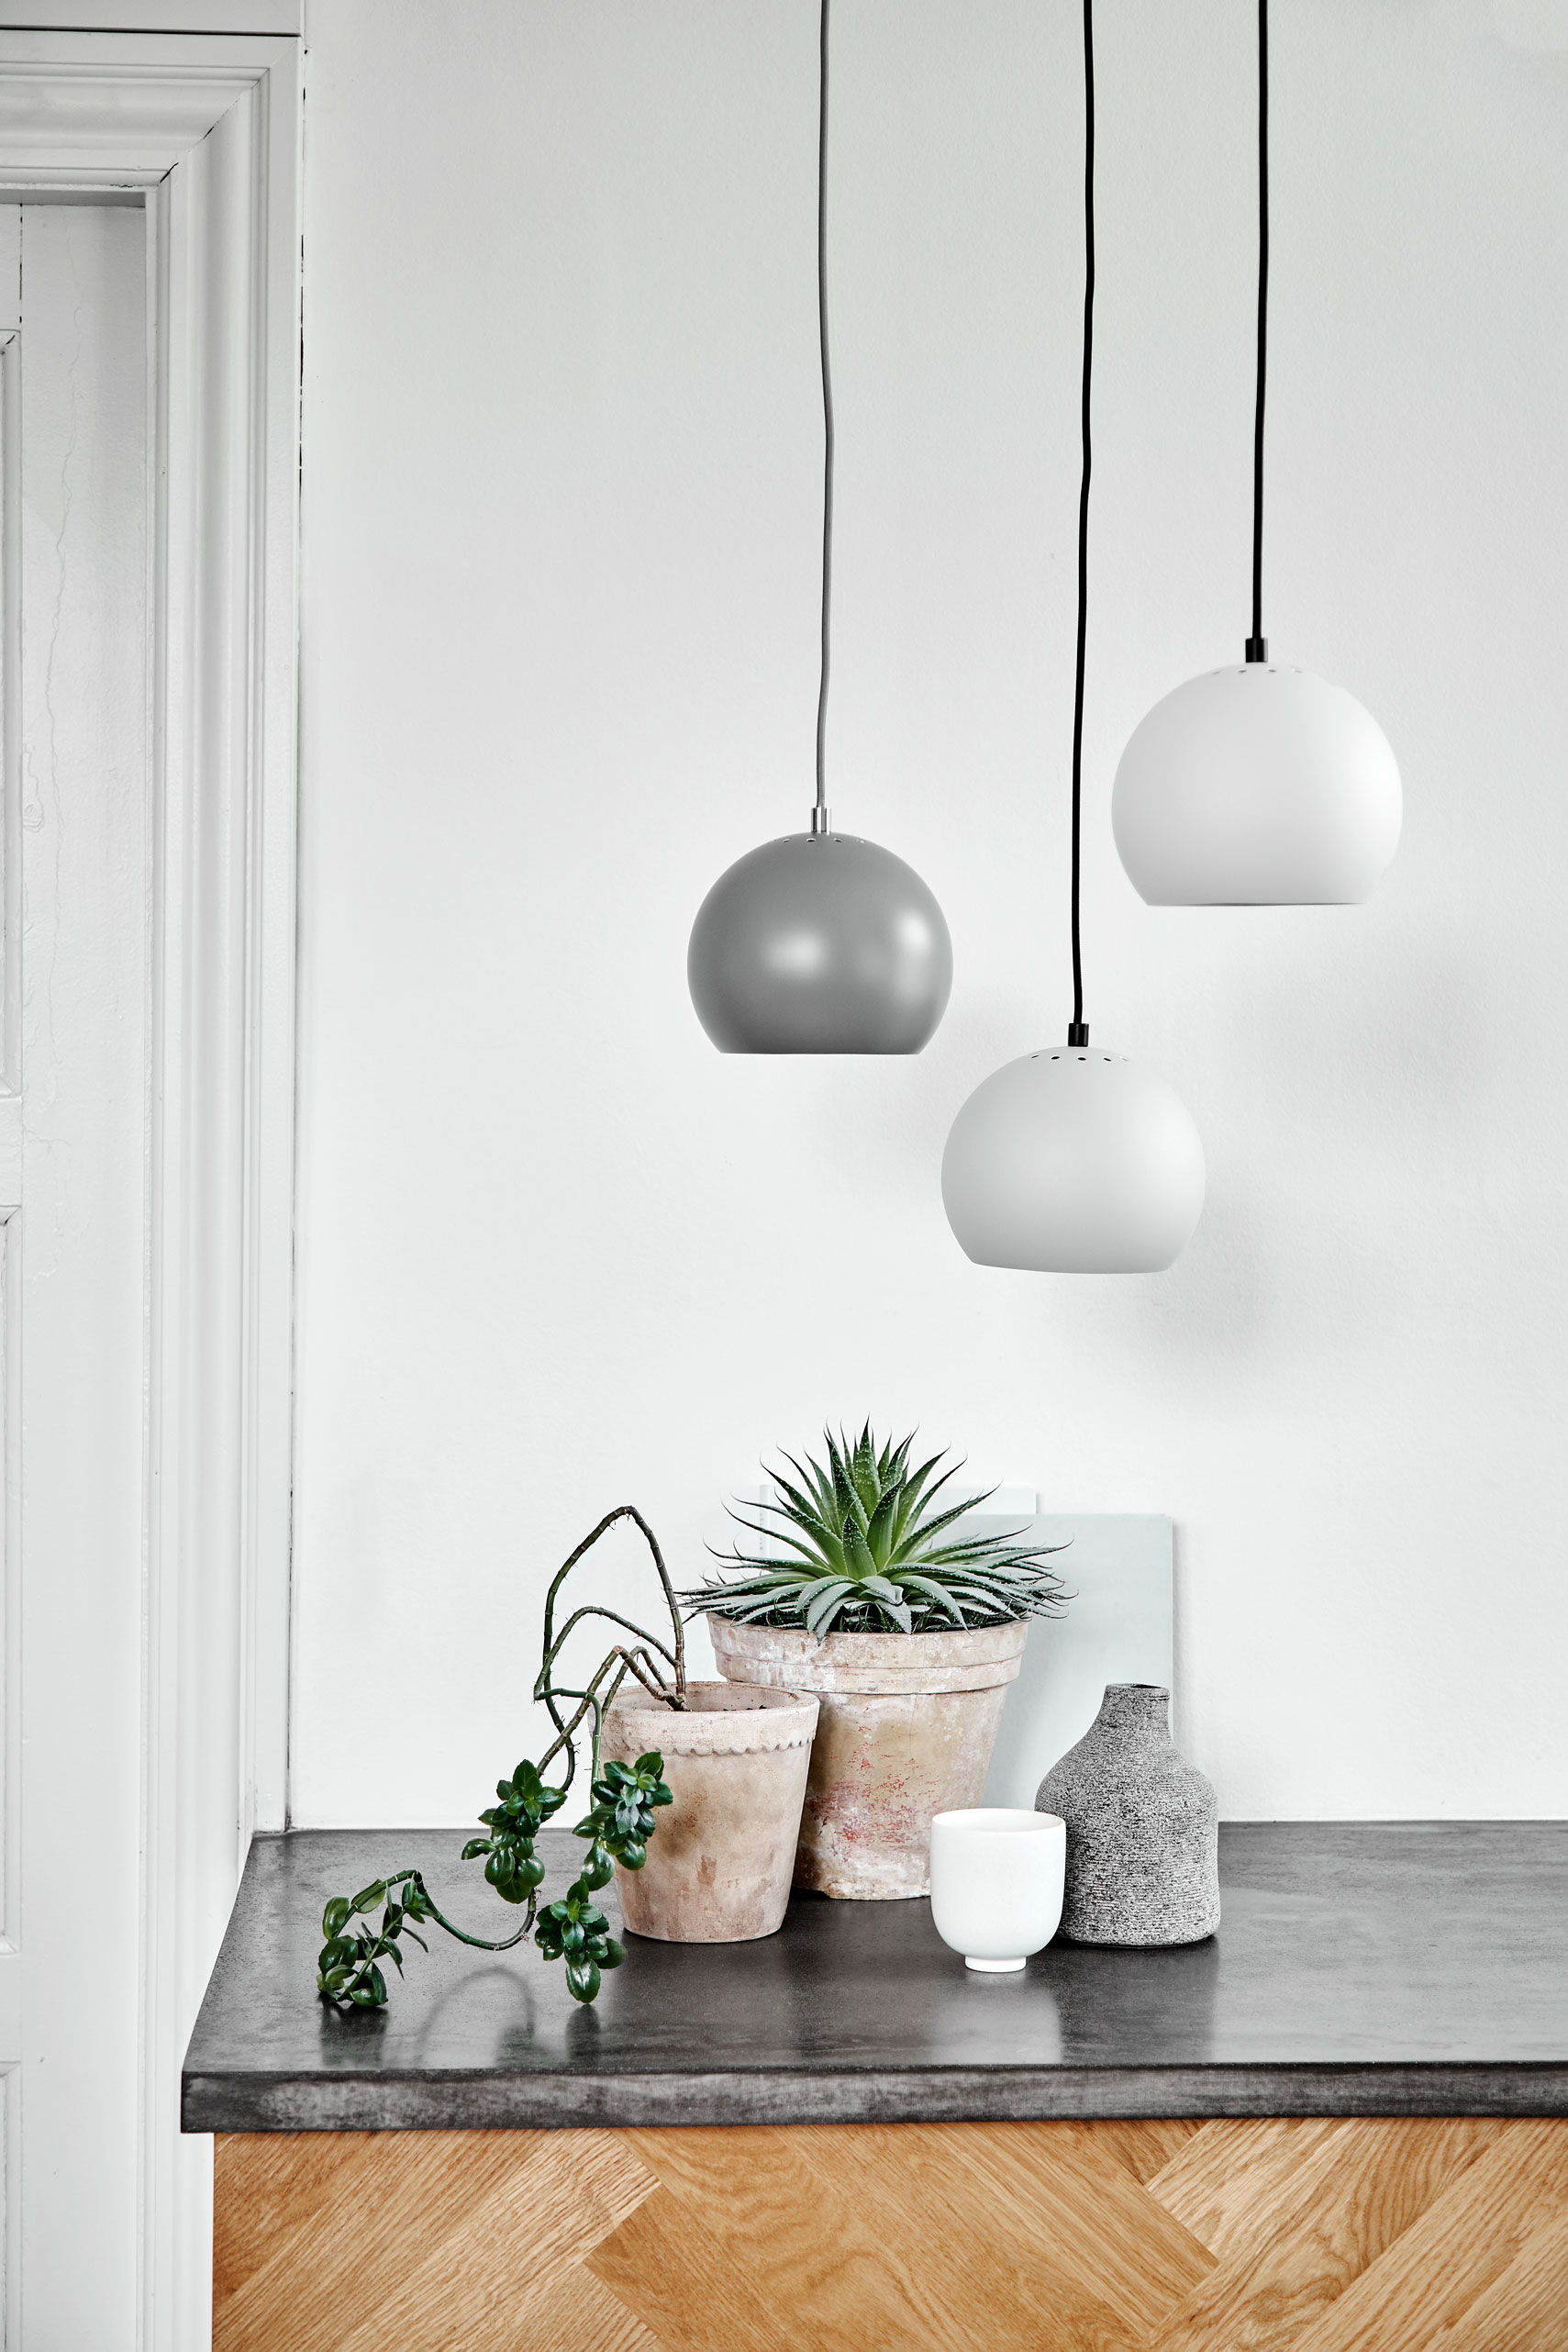 Ball-pendant-light-grey-matt-+-grey-structure---Lifestyle-Obdrupgård-1115.jpg